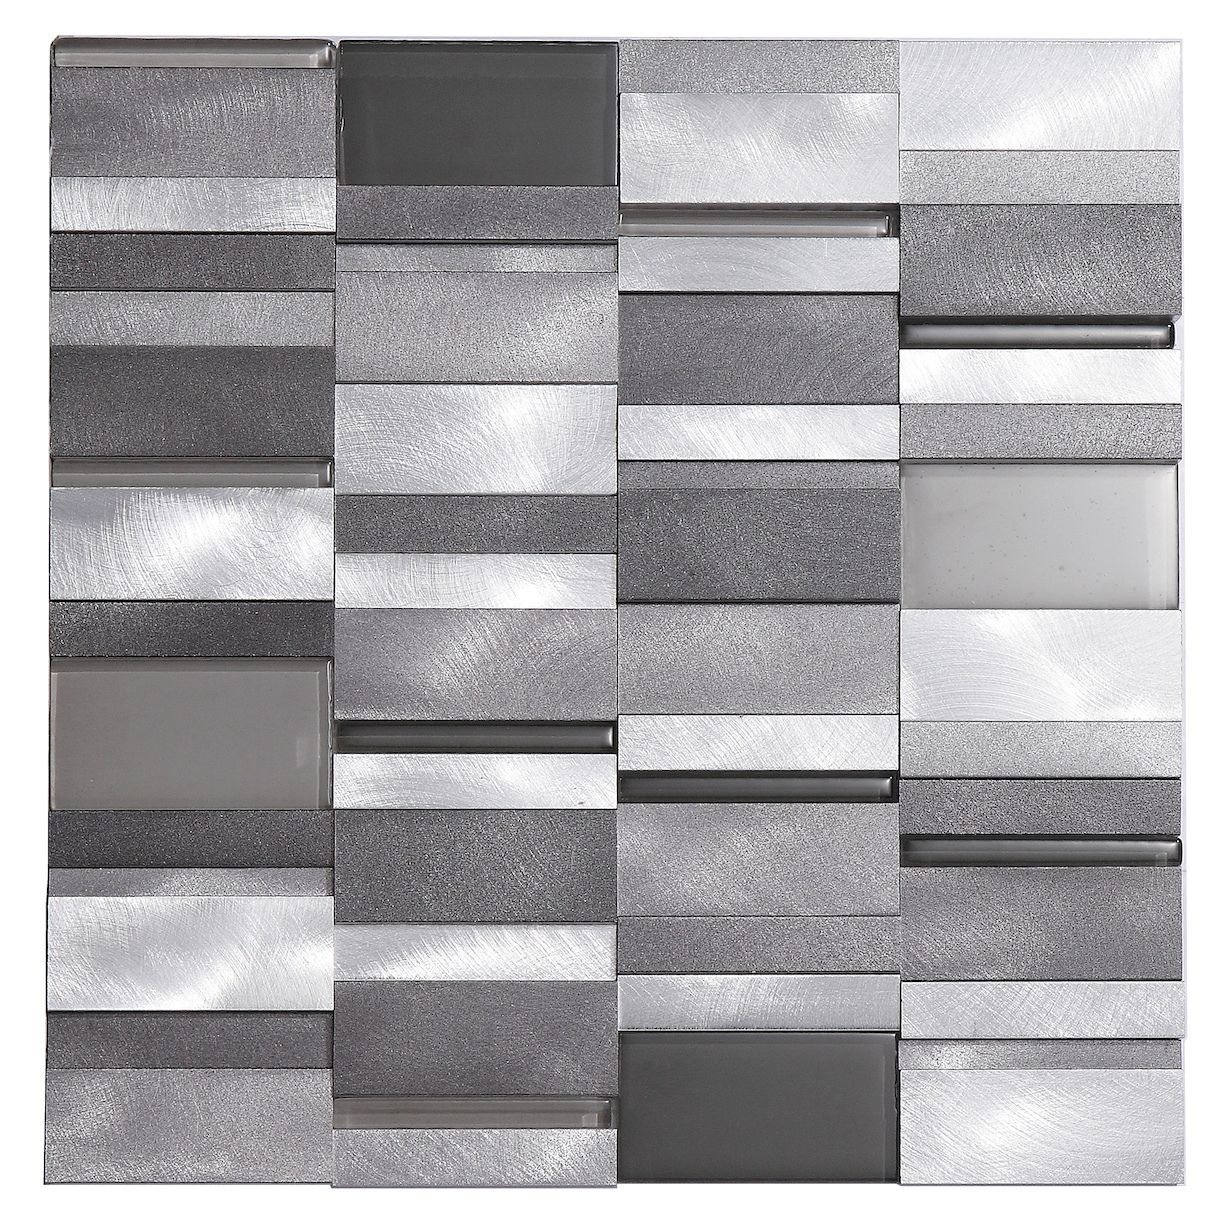 Aluminum tile silver mix modern pattern kitchen backsplash 3d tiles and mosaic backsplash Backsplash wall tile